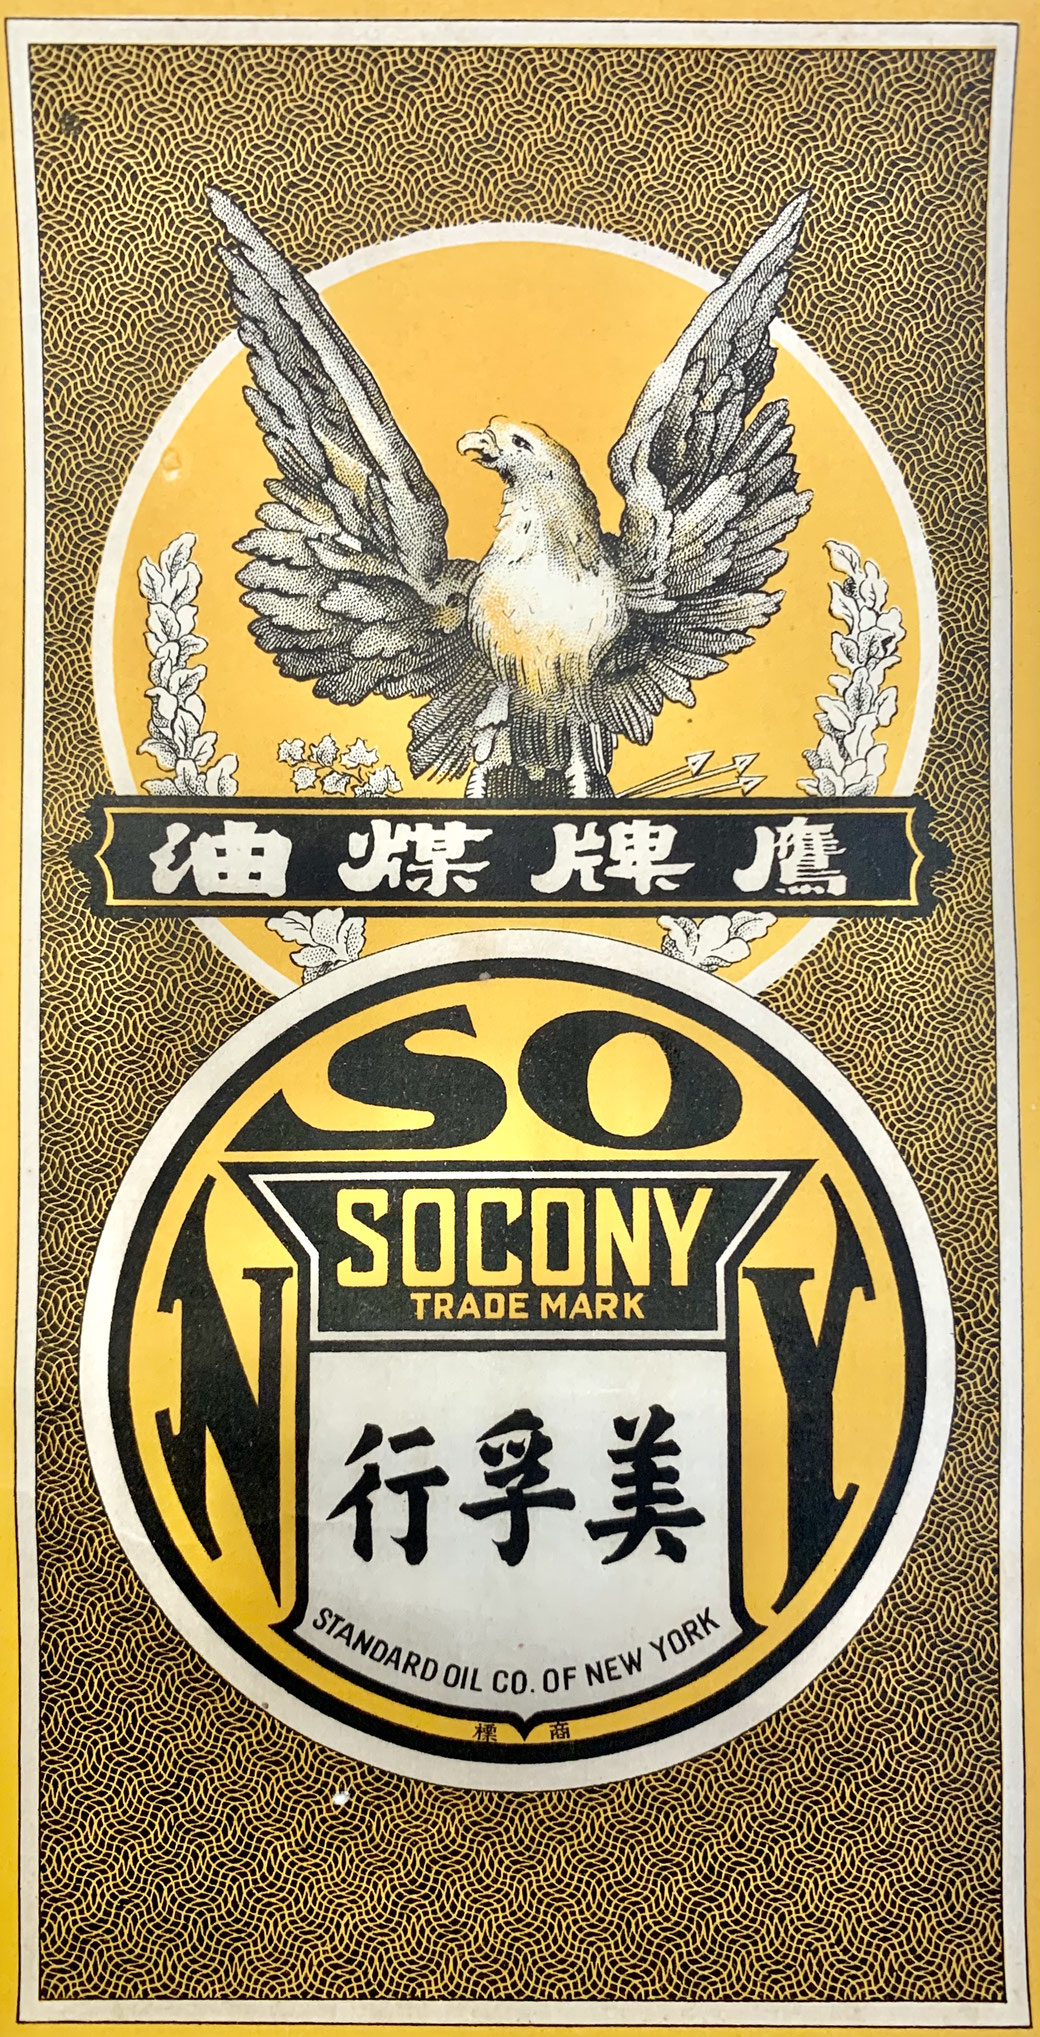 SOCONY China print ad from the MOFBA collection